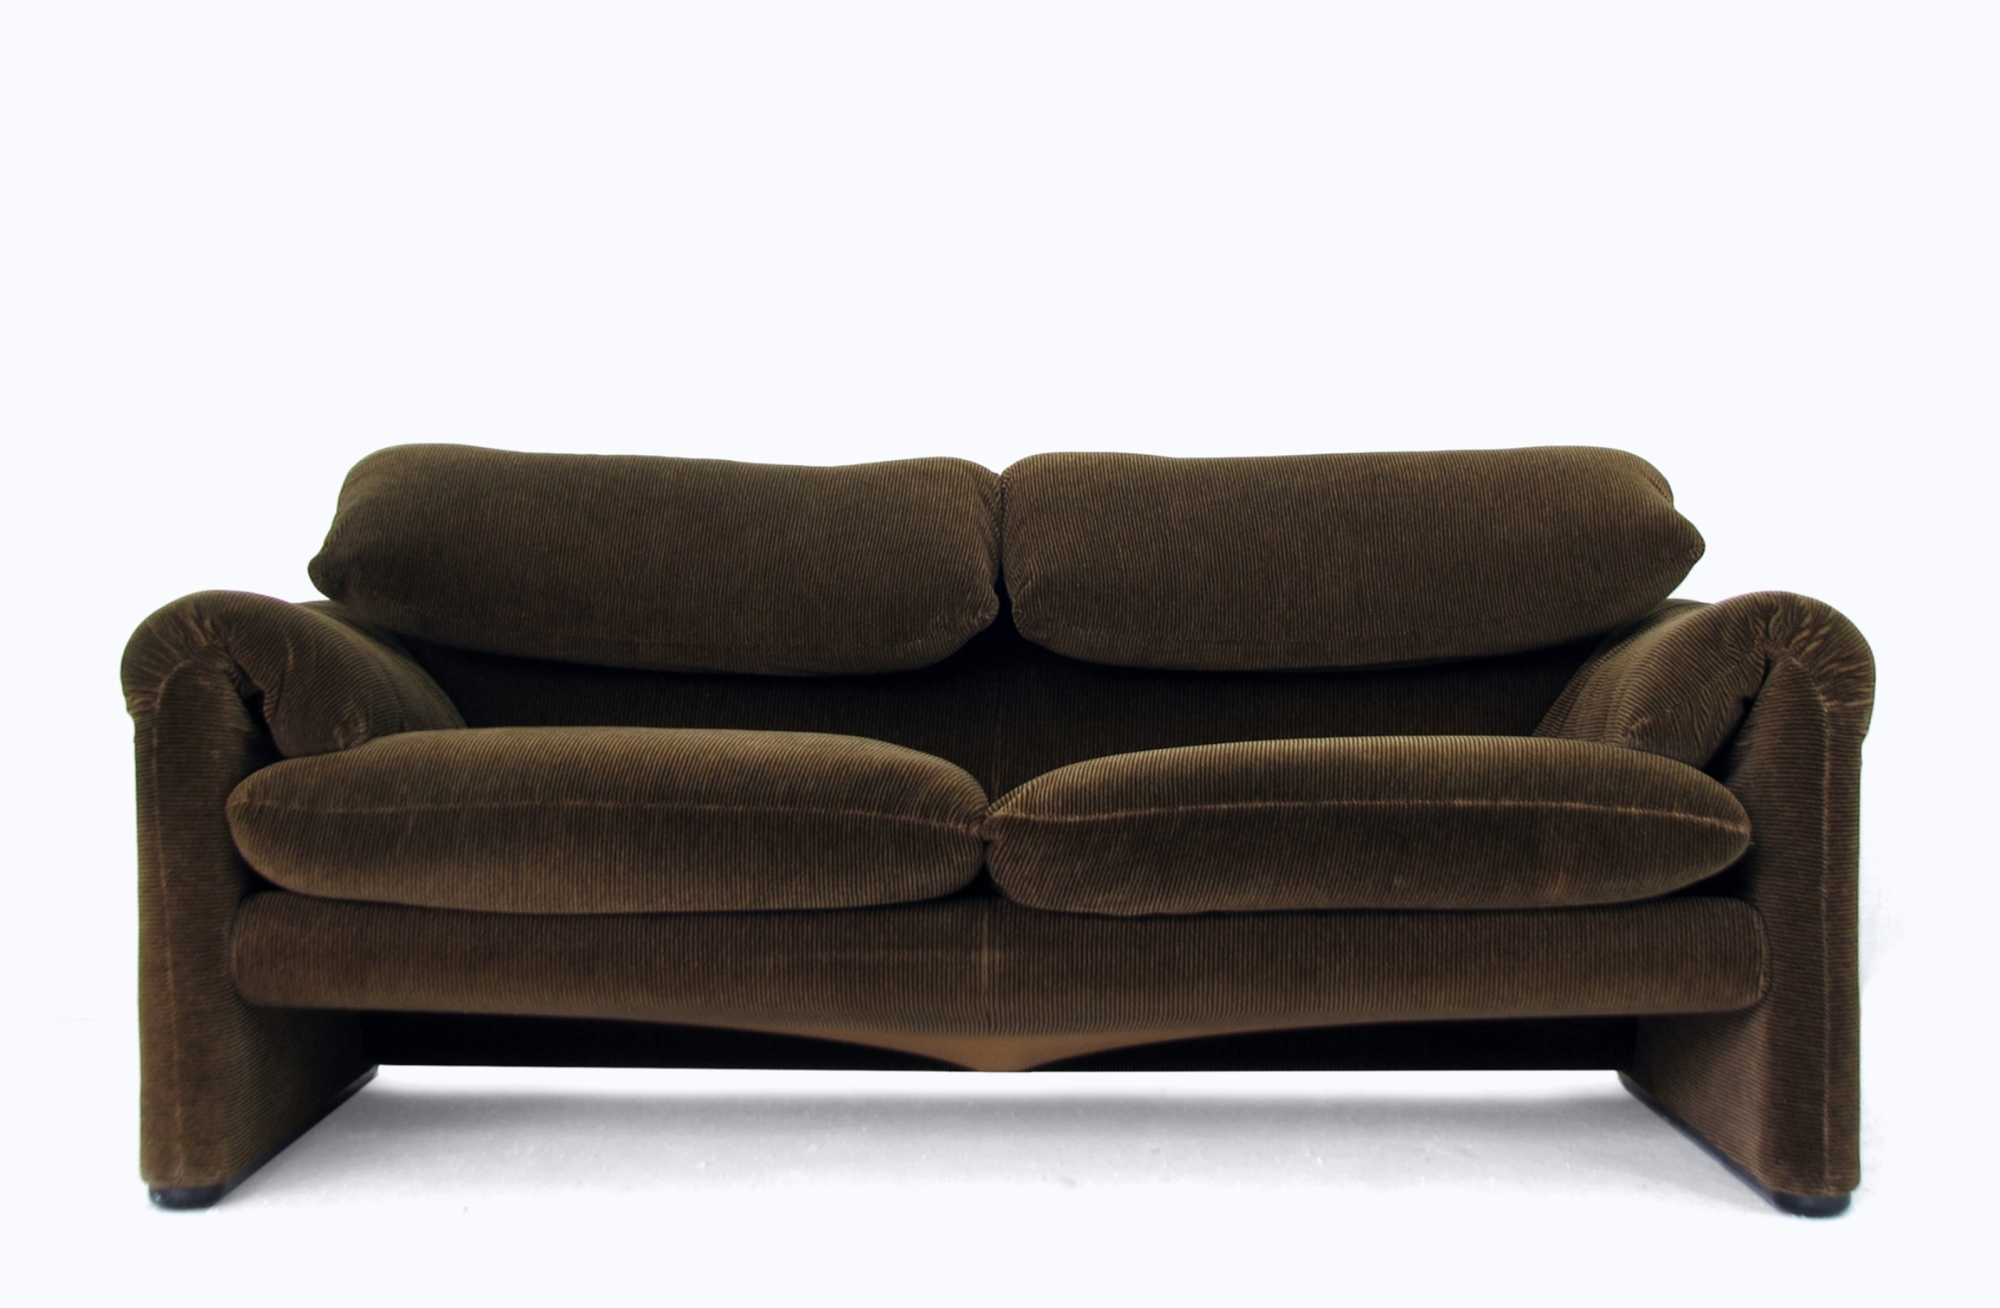 Design couch 2 sitzer maralunga cassina cord sofa 70er ebay for 70 er jahre couch